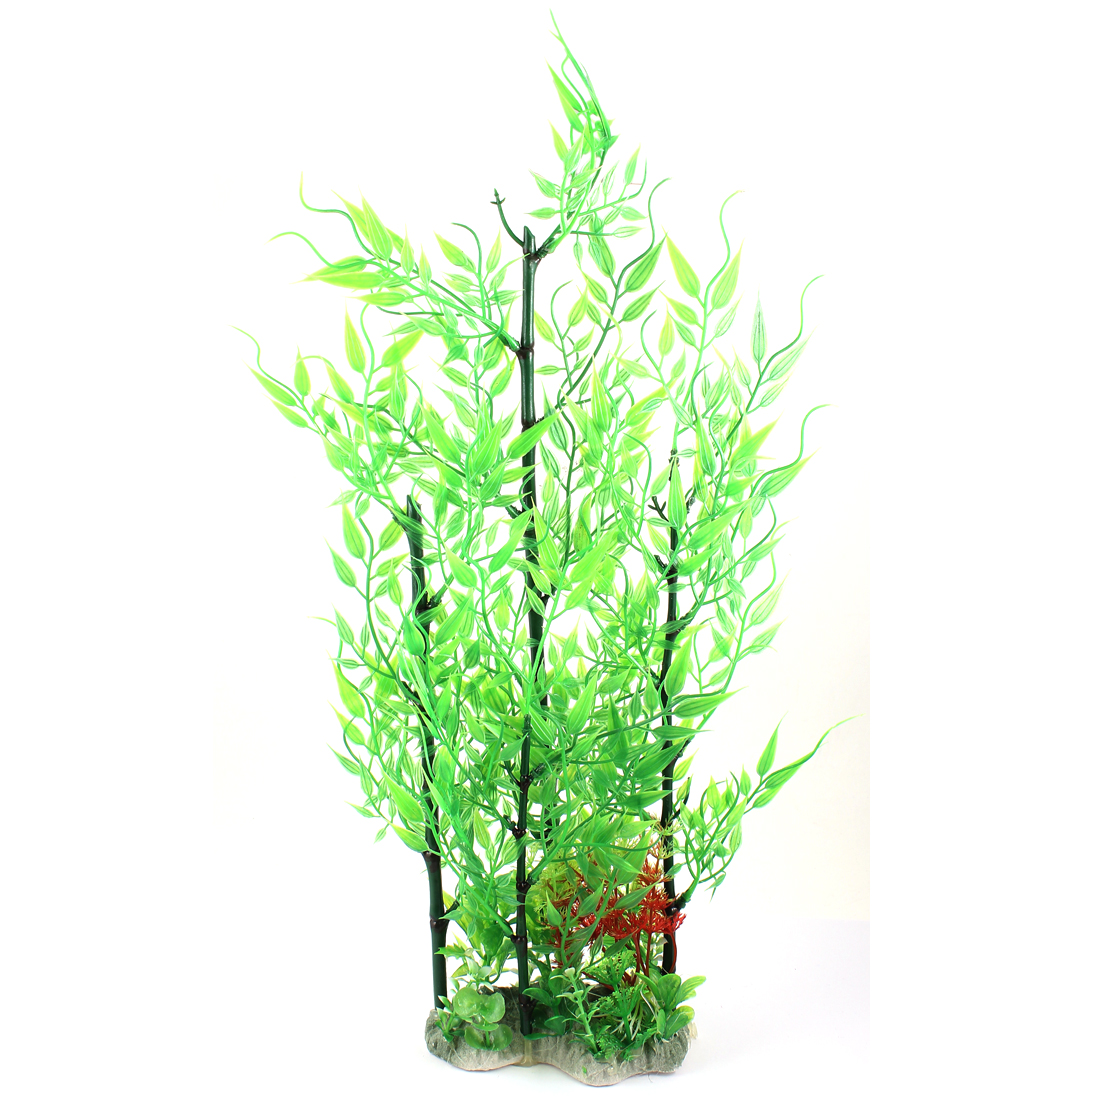 "18.9"" Height Bamboo Shape Manmade Green Plastic Plant for Aquarium"